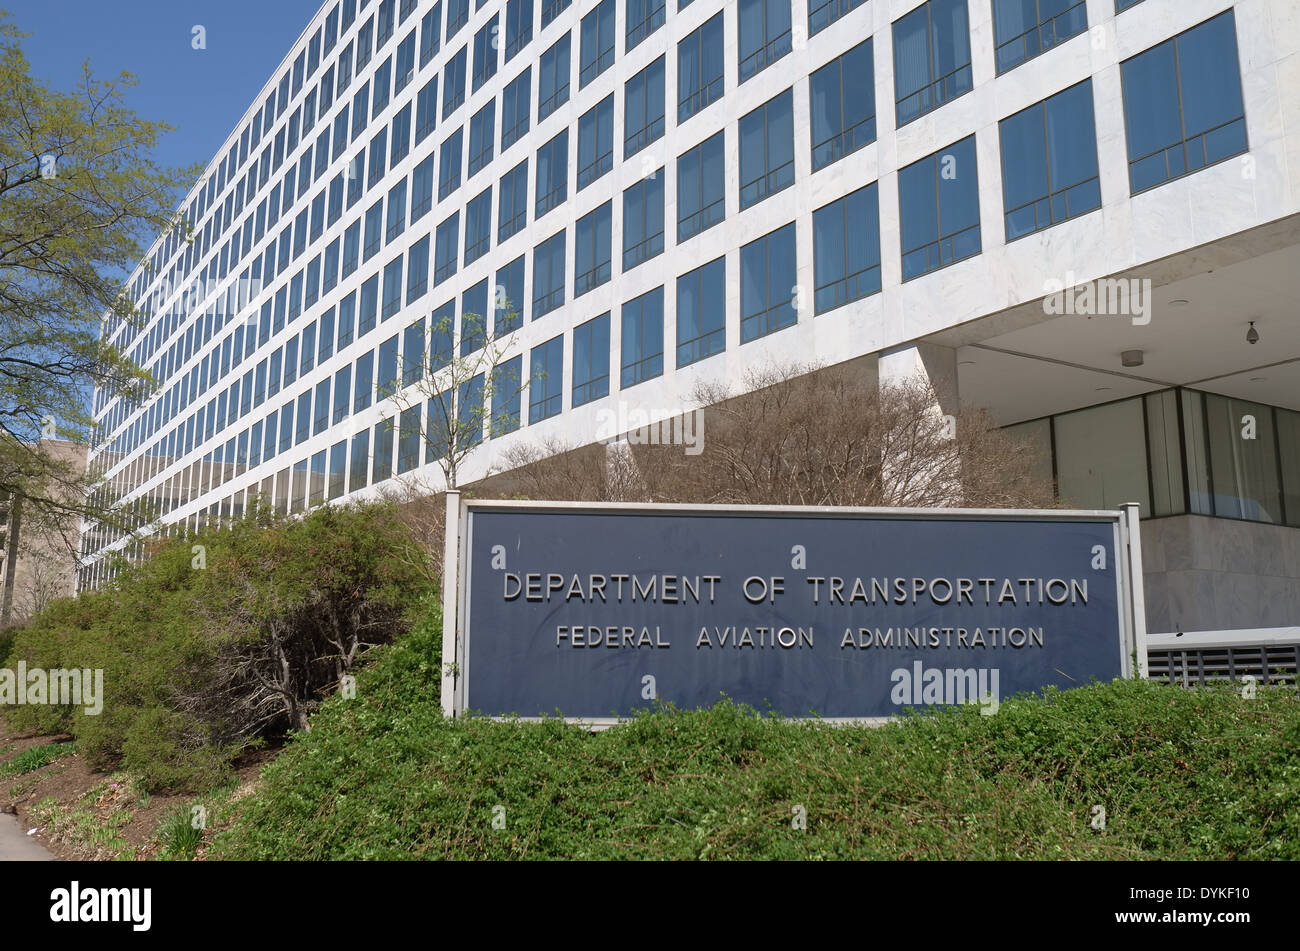 United States Department of Transportation Building Federal Aviation Administration - Stock Image